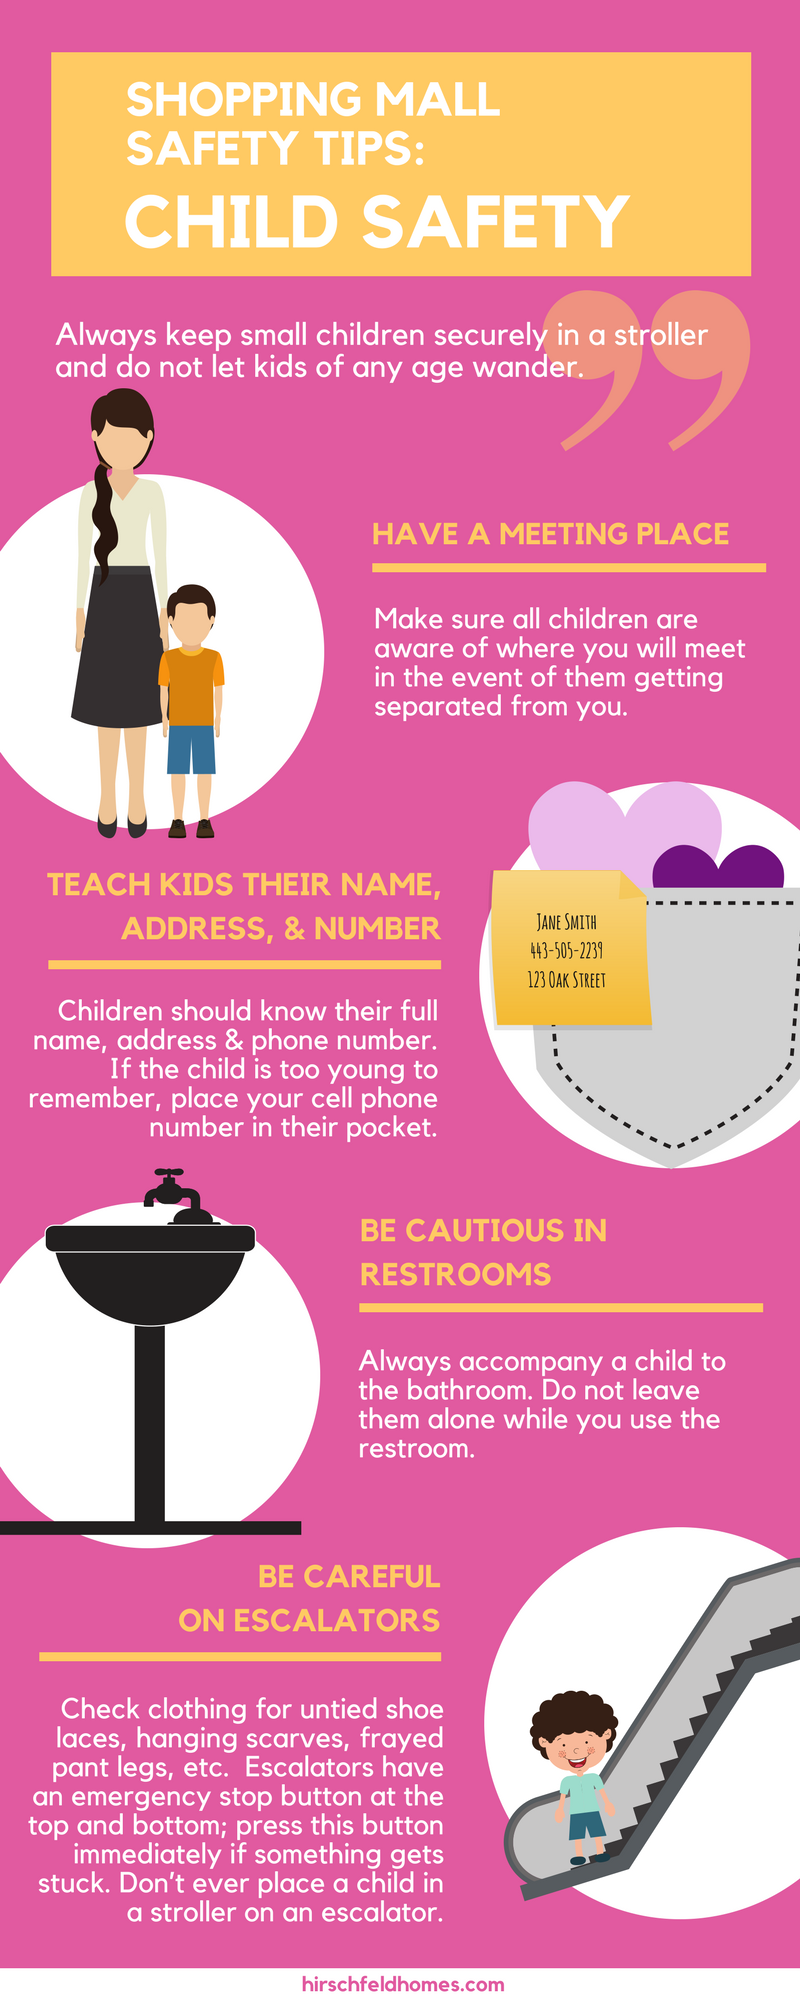 shopping mall safety tips child safety infographic